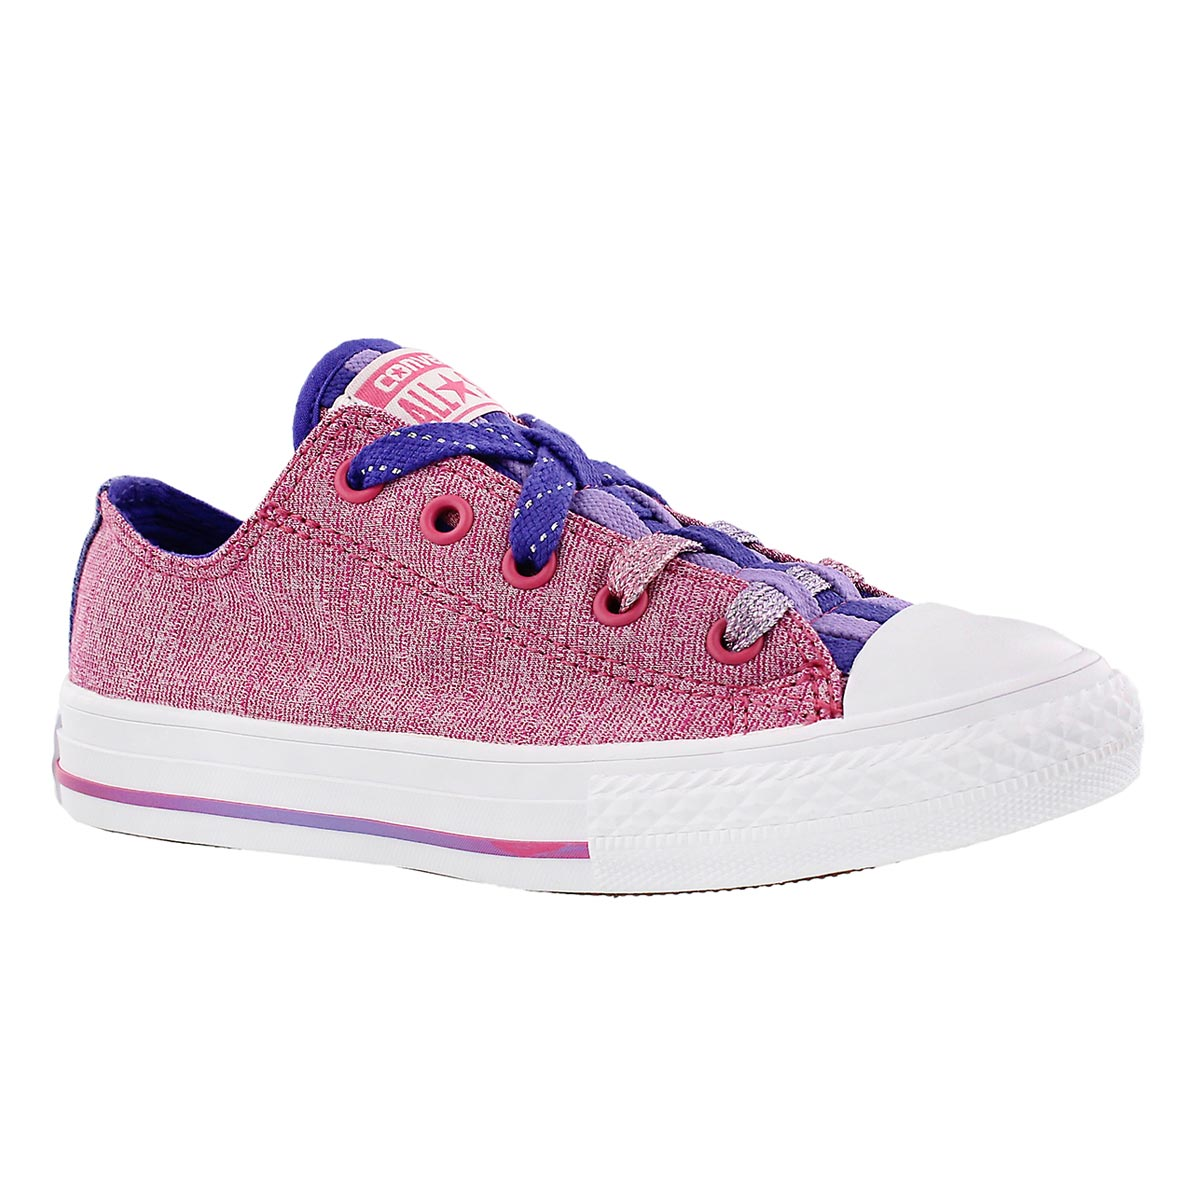 Girls' CT ALL STAR LOOPHOLES pink/grape sneakers